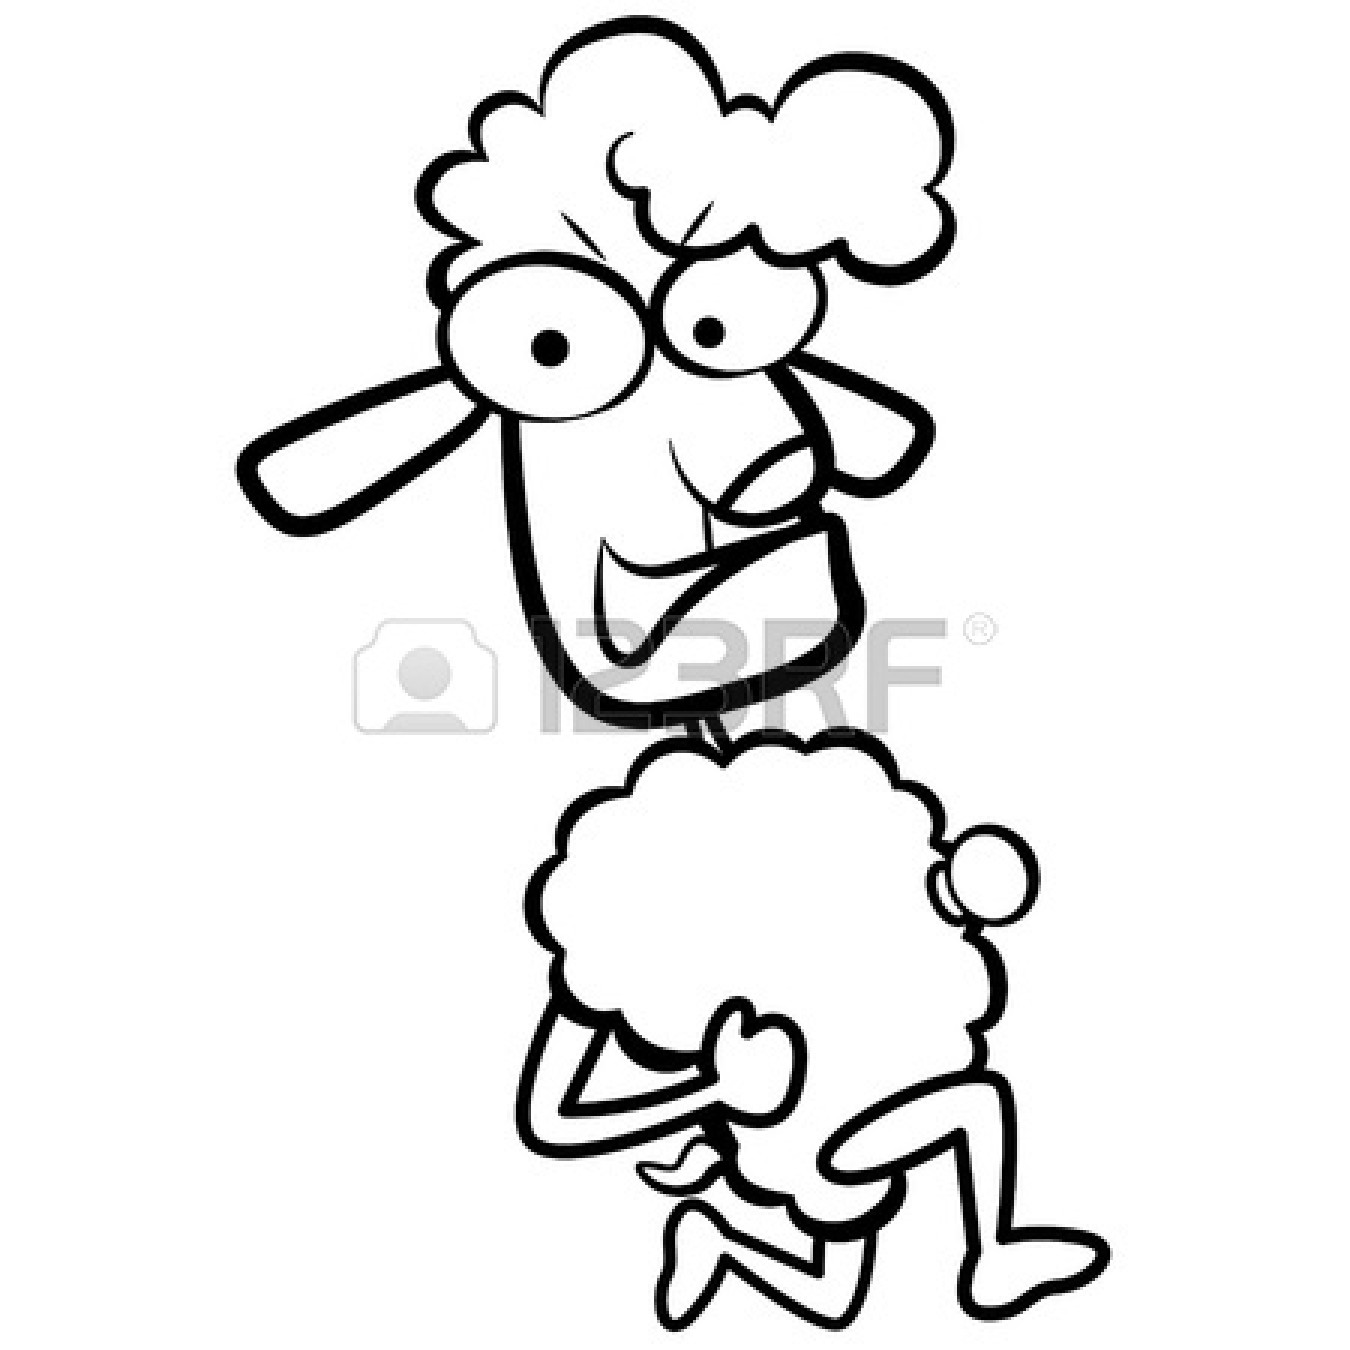 Sheep Flock Drawing Flock-of-sheep-coloring-page